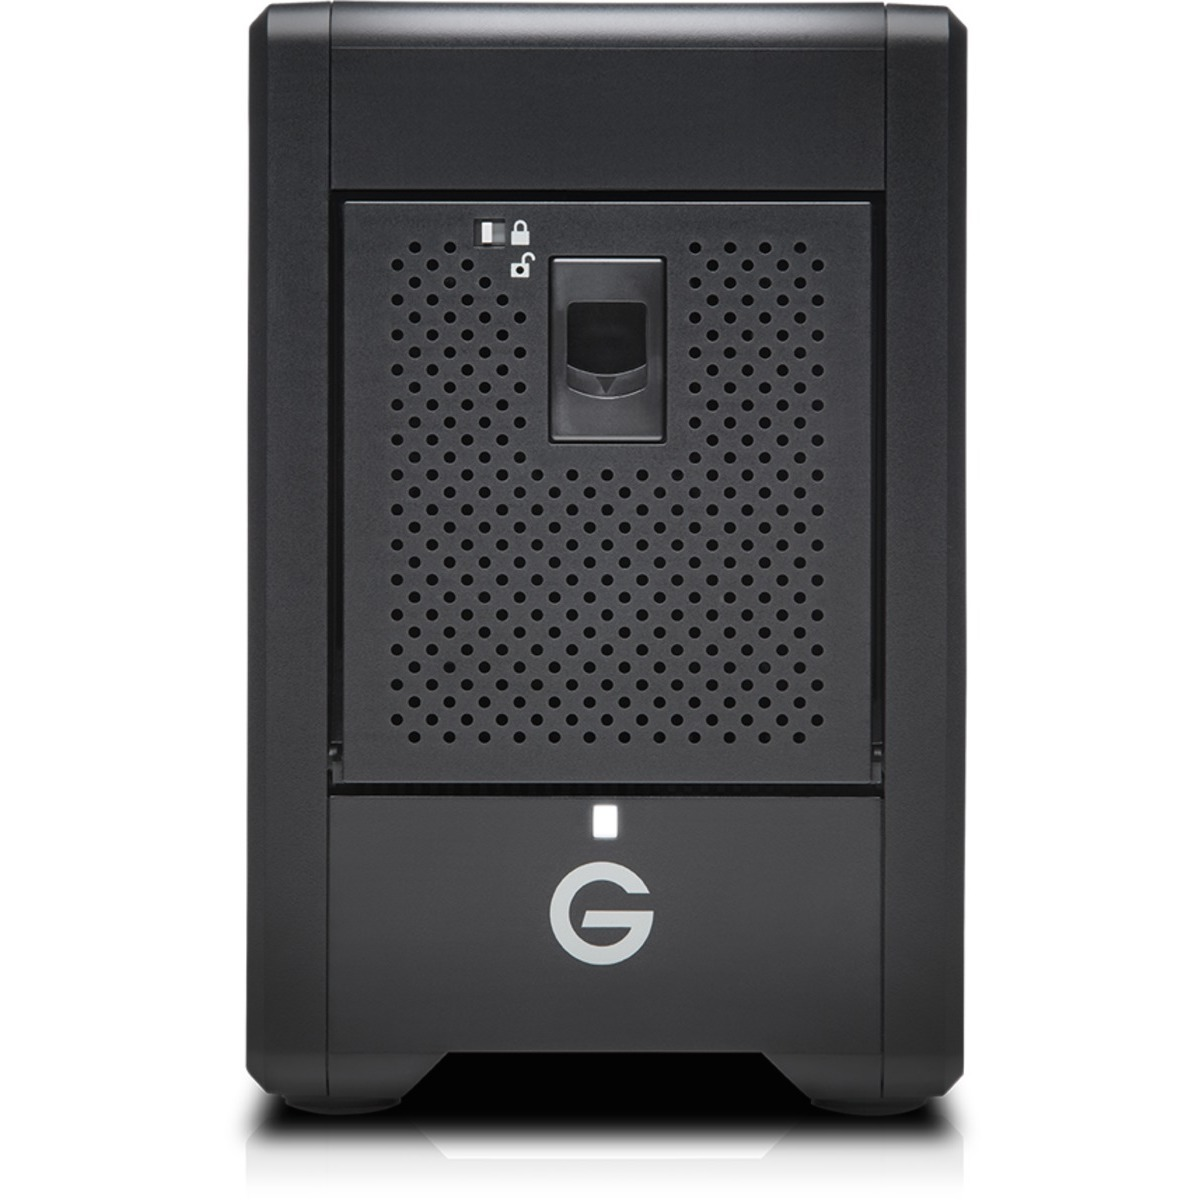 buy $3002 G-Technology G-SPEED Shuttle Thunderbolt 3 40tb Desktop DAS - Direct Attached Storage Device 4x10000gb Western Digital Ultrastar DC HC510 HUH721010ALE600 3.5 7200rpm SATA 6Gb/s HDD ENTERPRISE Class Drives Installed - Burn-In Tested - nas headquarters buy network attached storage server device das new raid-5 free shipping usa spring inventory clearance sale happening now G-SPEED Shuttle Thunderbolt 3